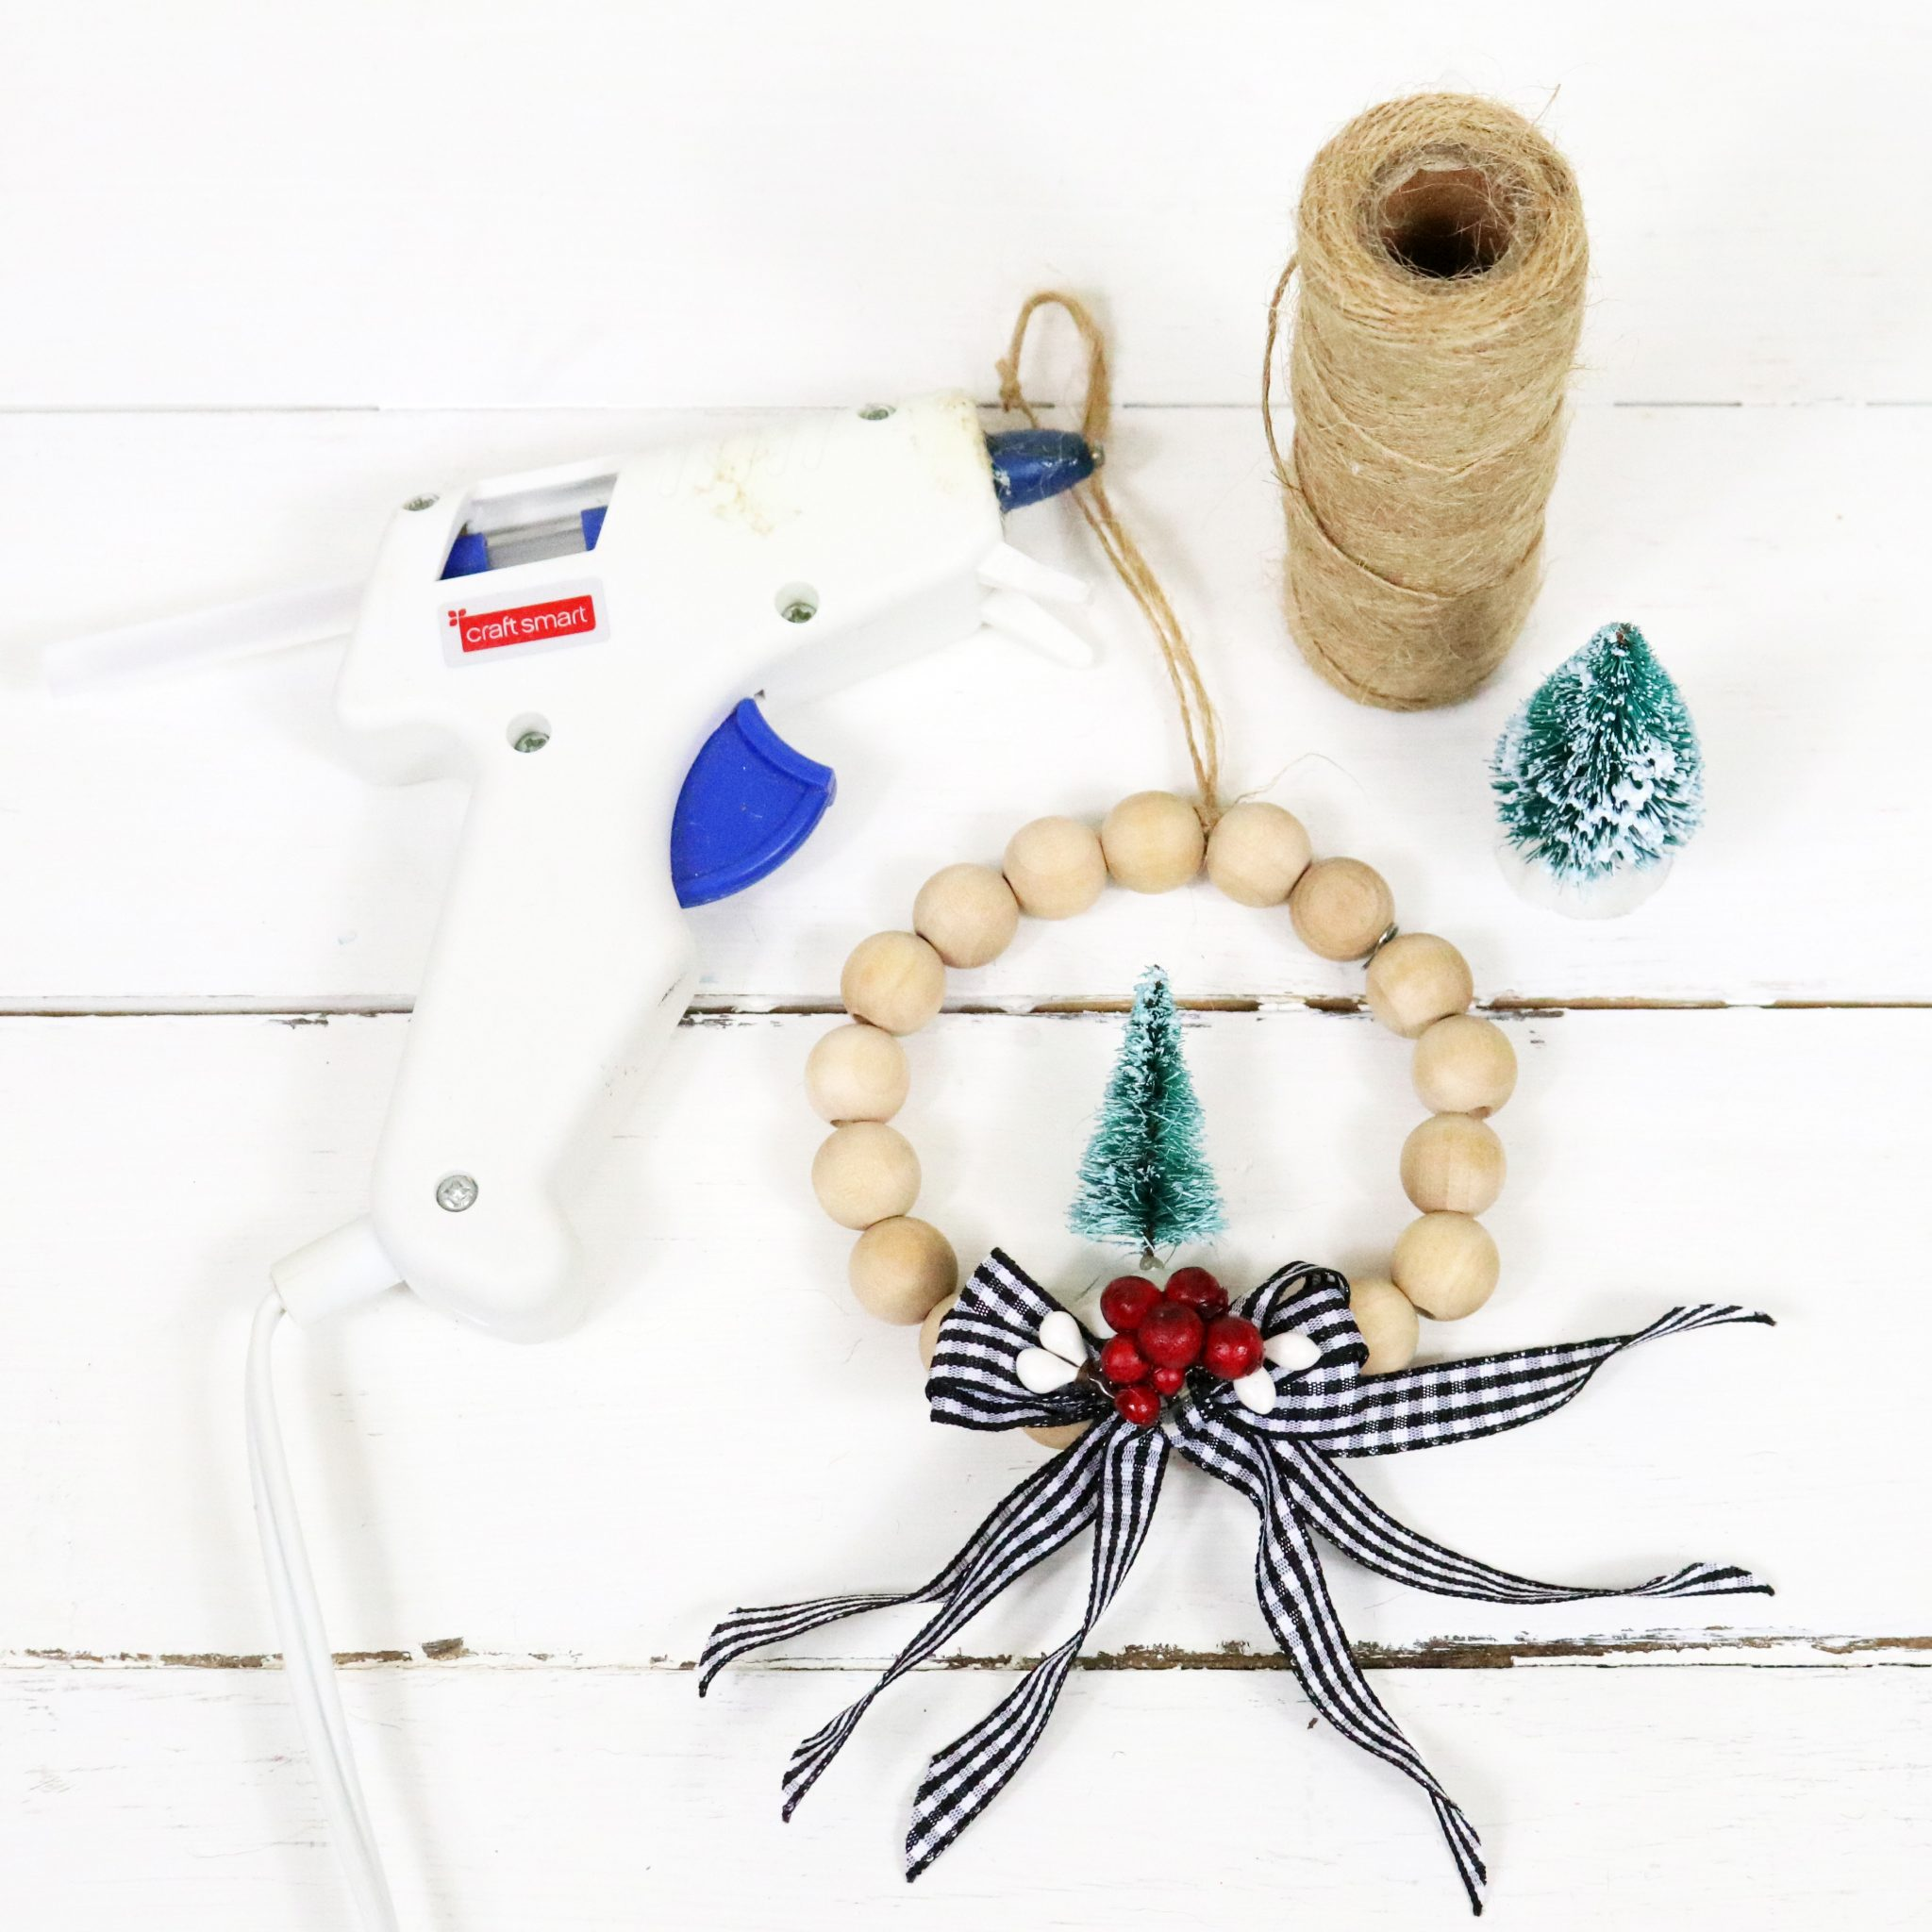 It's time for another Quick and Easy DIY Craft, today we are featuring DIY Farmhouse Wood Bead Wreath Ornaments that will look wonderful on your tree and perfect on your packages!